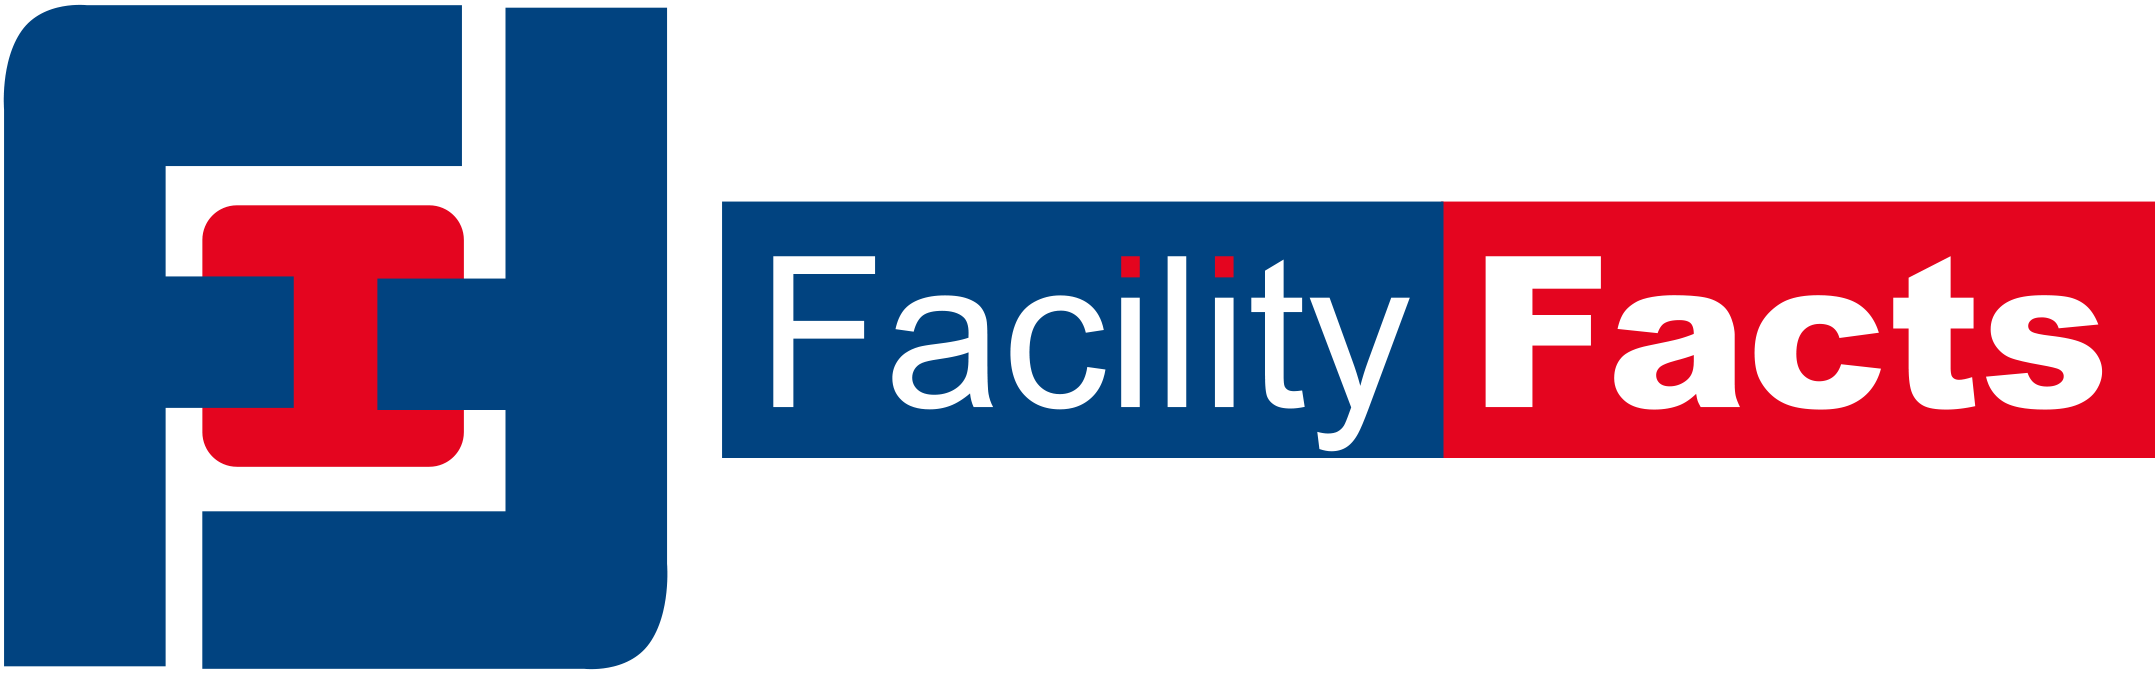 Facility Facts logo